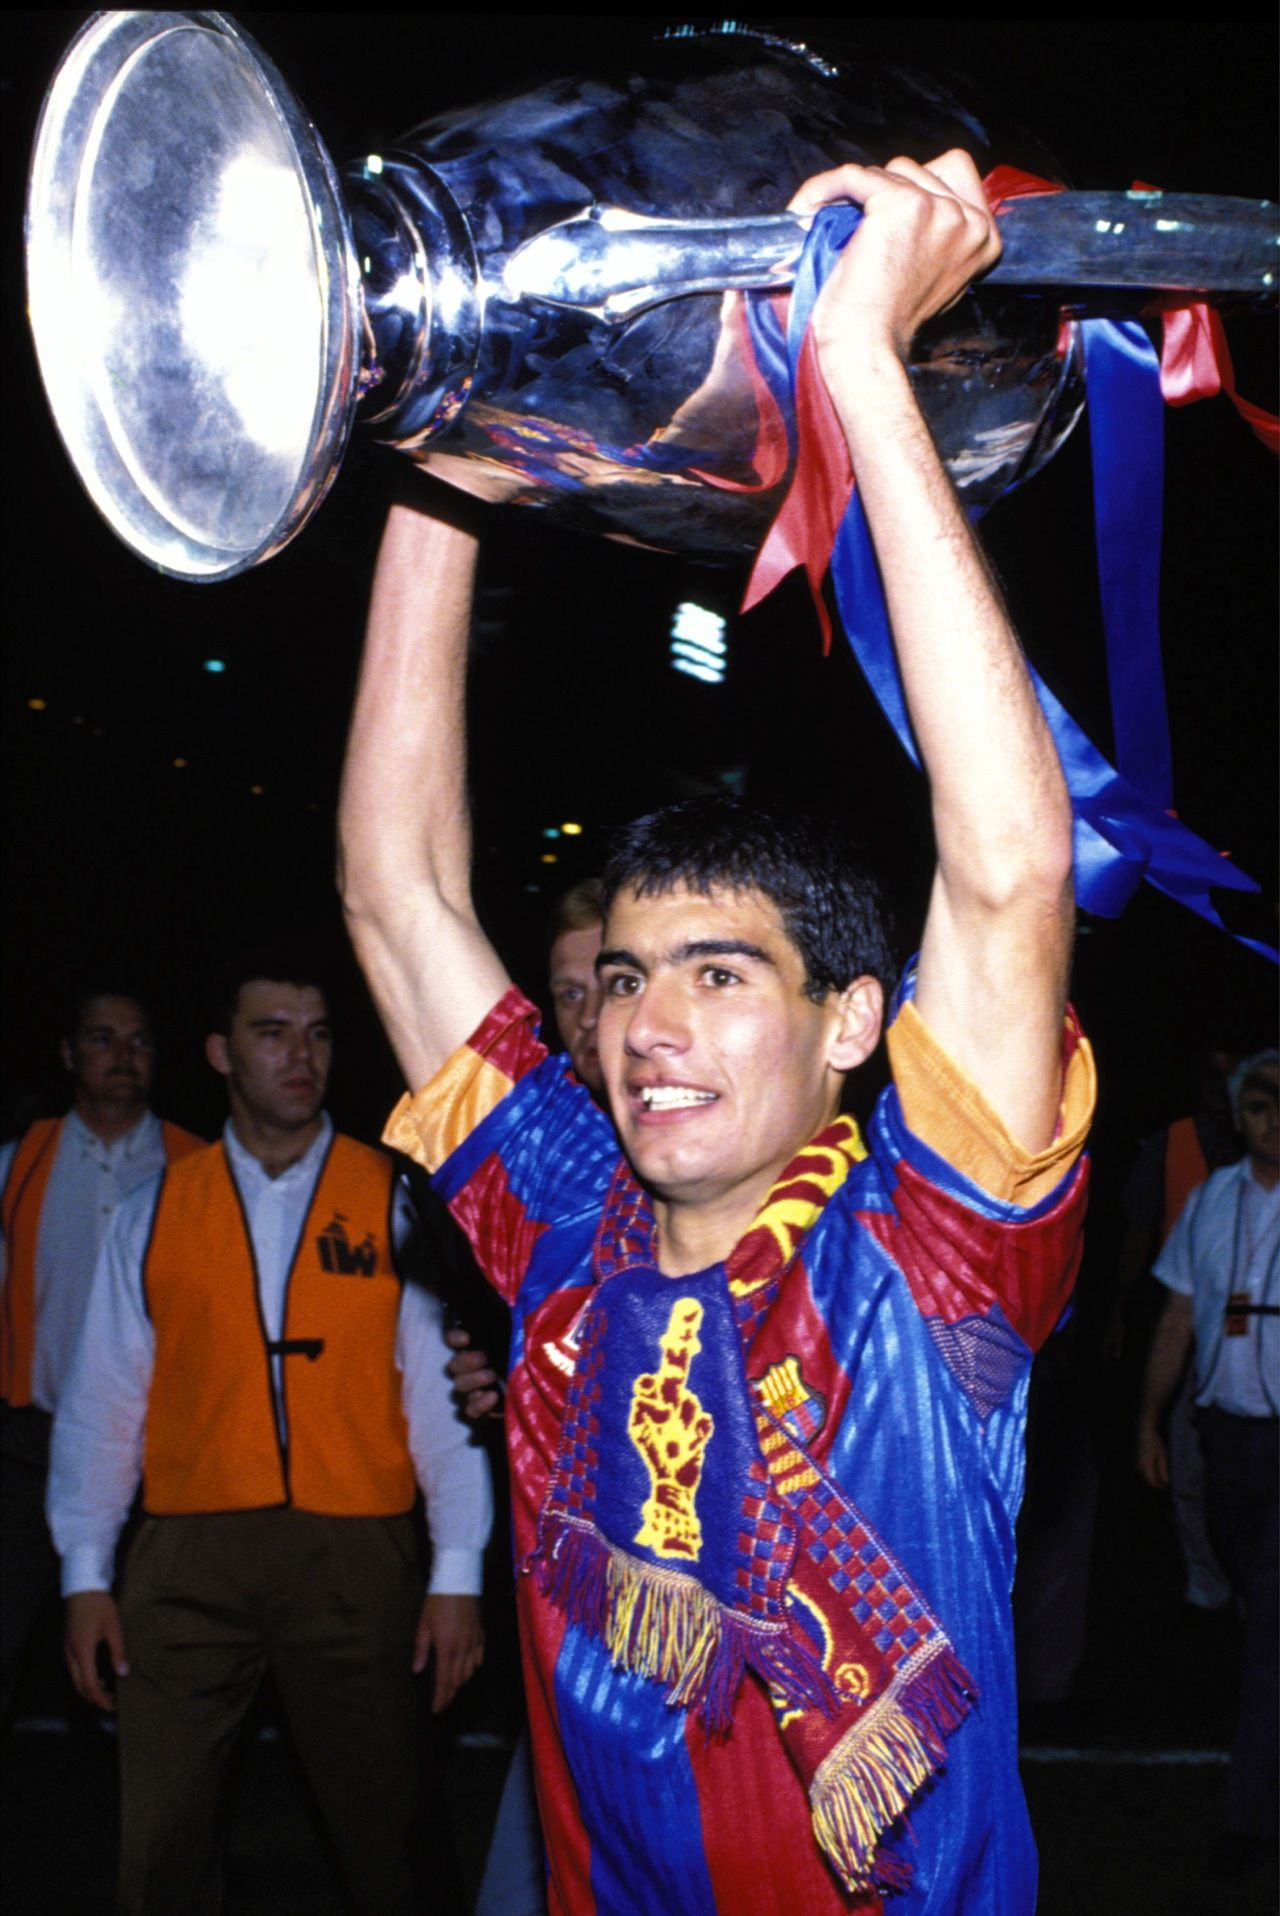 """03. Guardiola aixecant la Champions del 92. Josep """"Pep"""" Guardiola i Sala made 479 appearances from 1990 to 2001. On 11 April 2001, Barcelona's captain announced his intention to leave the club after 17 years of service as a player-leader."""